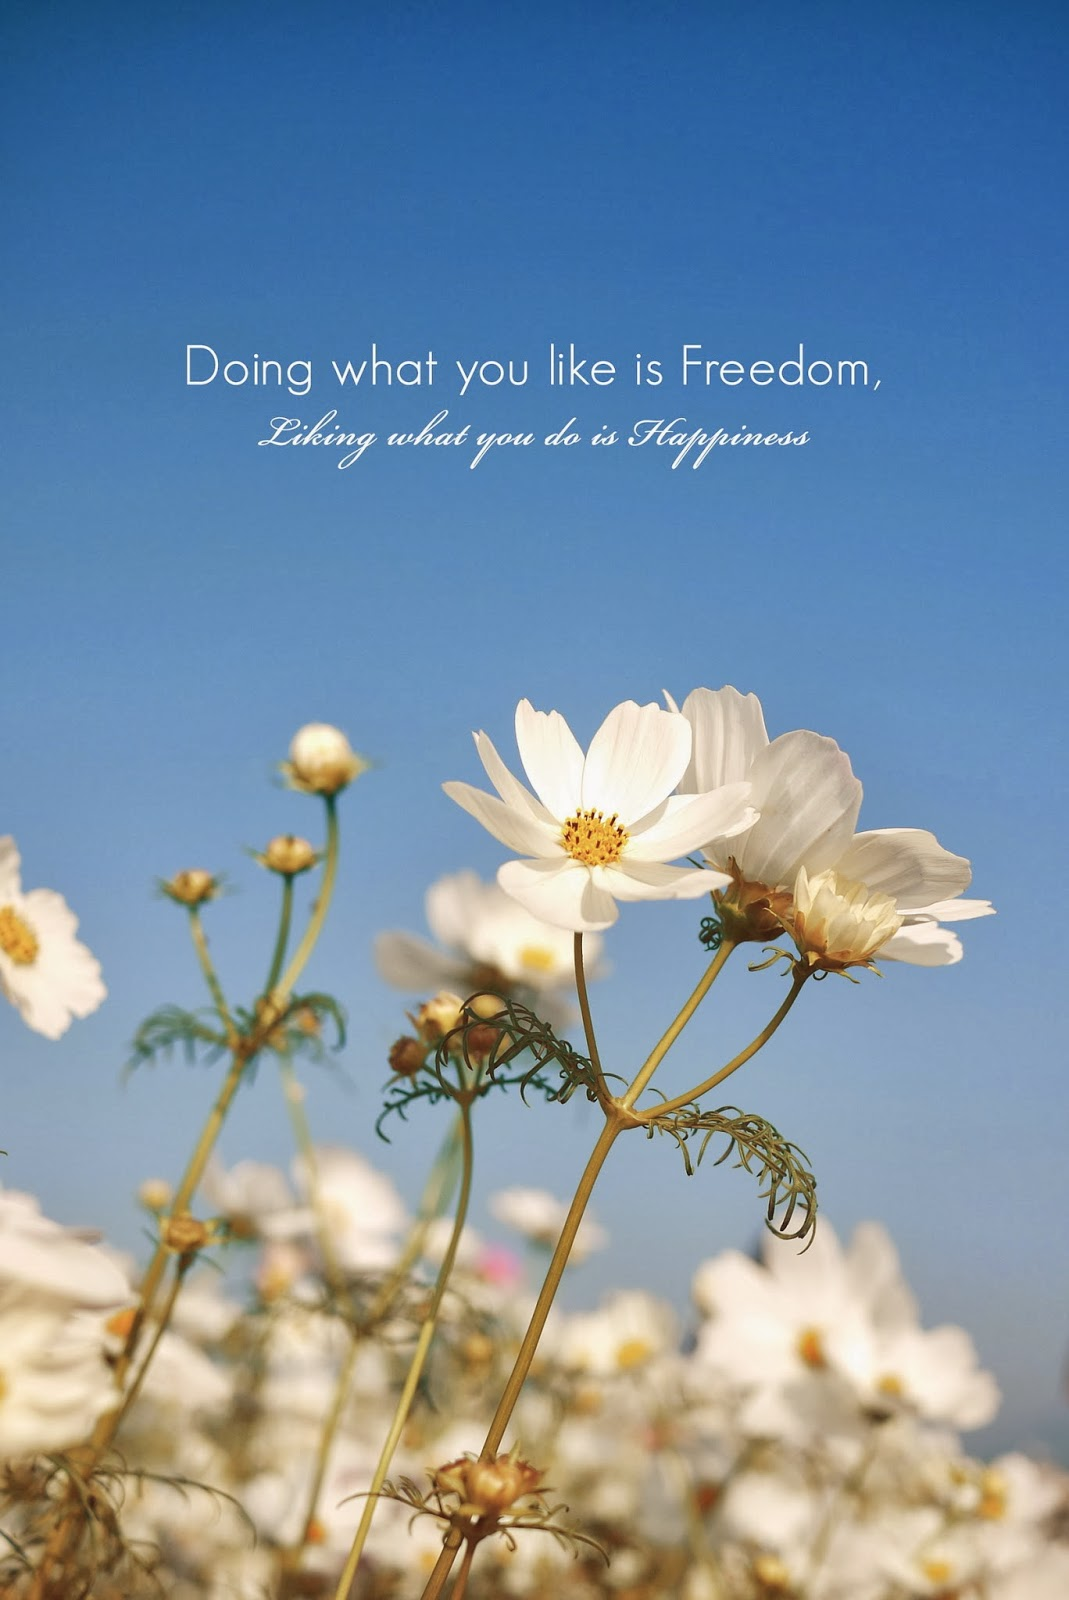 doing what you like is freedom, liking what you do is happiness.